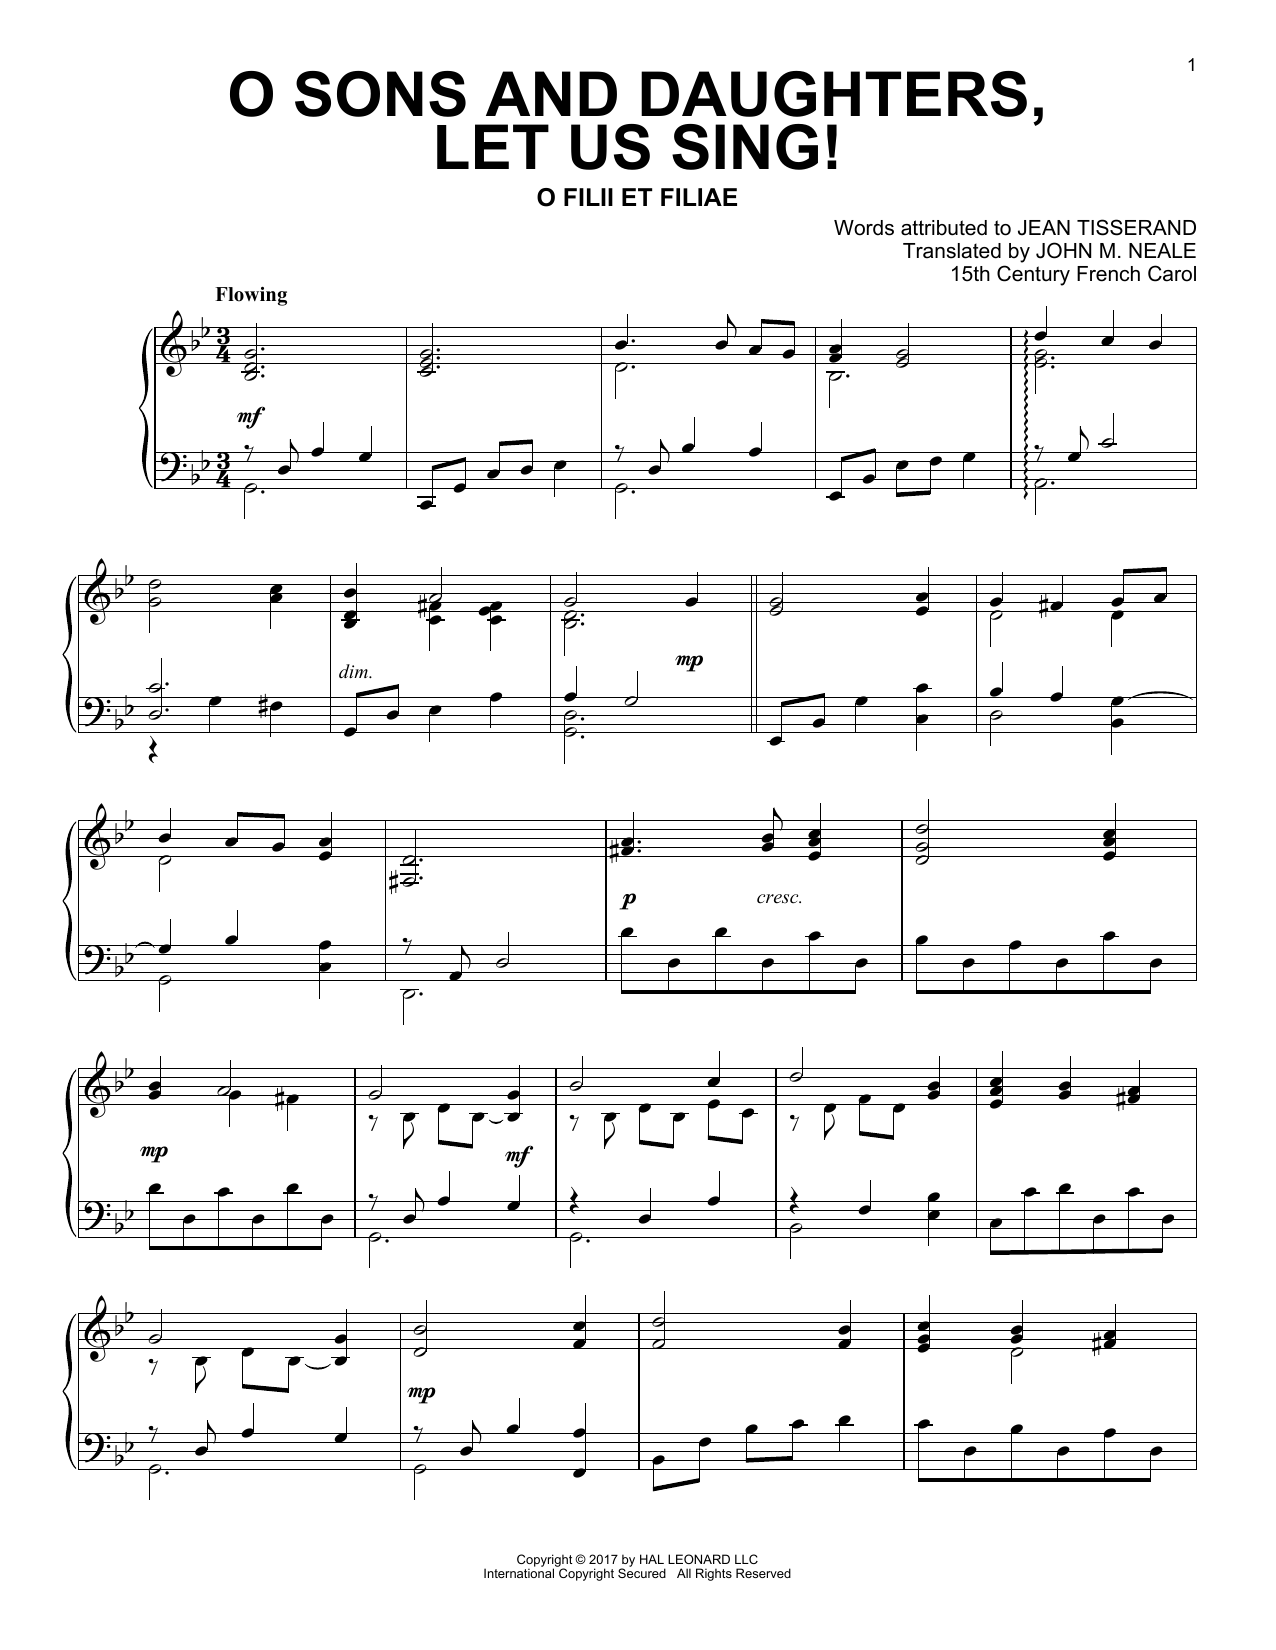 Traditional Carol O Sons And Daughters, Let Us Sing! sheet music notes and chords